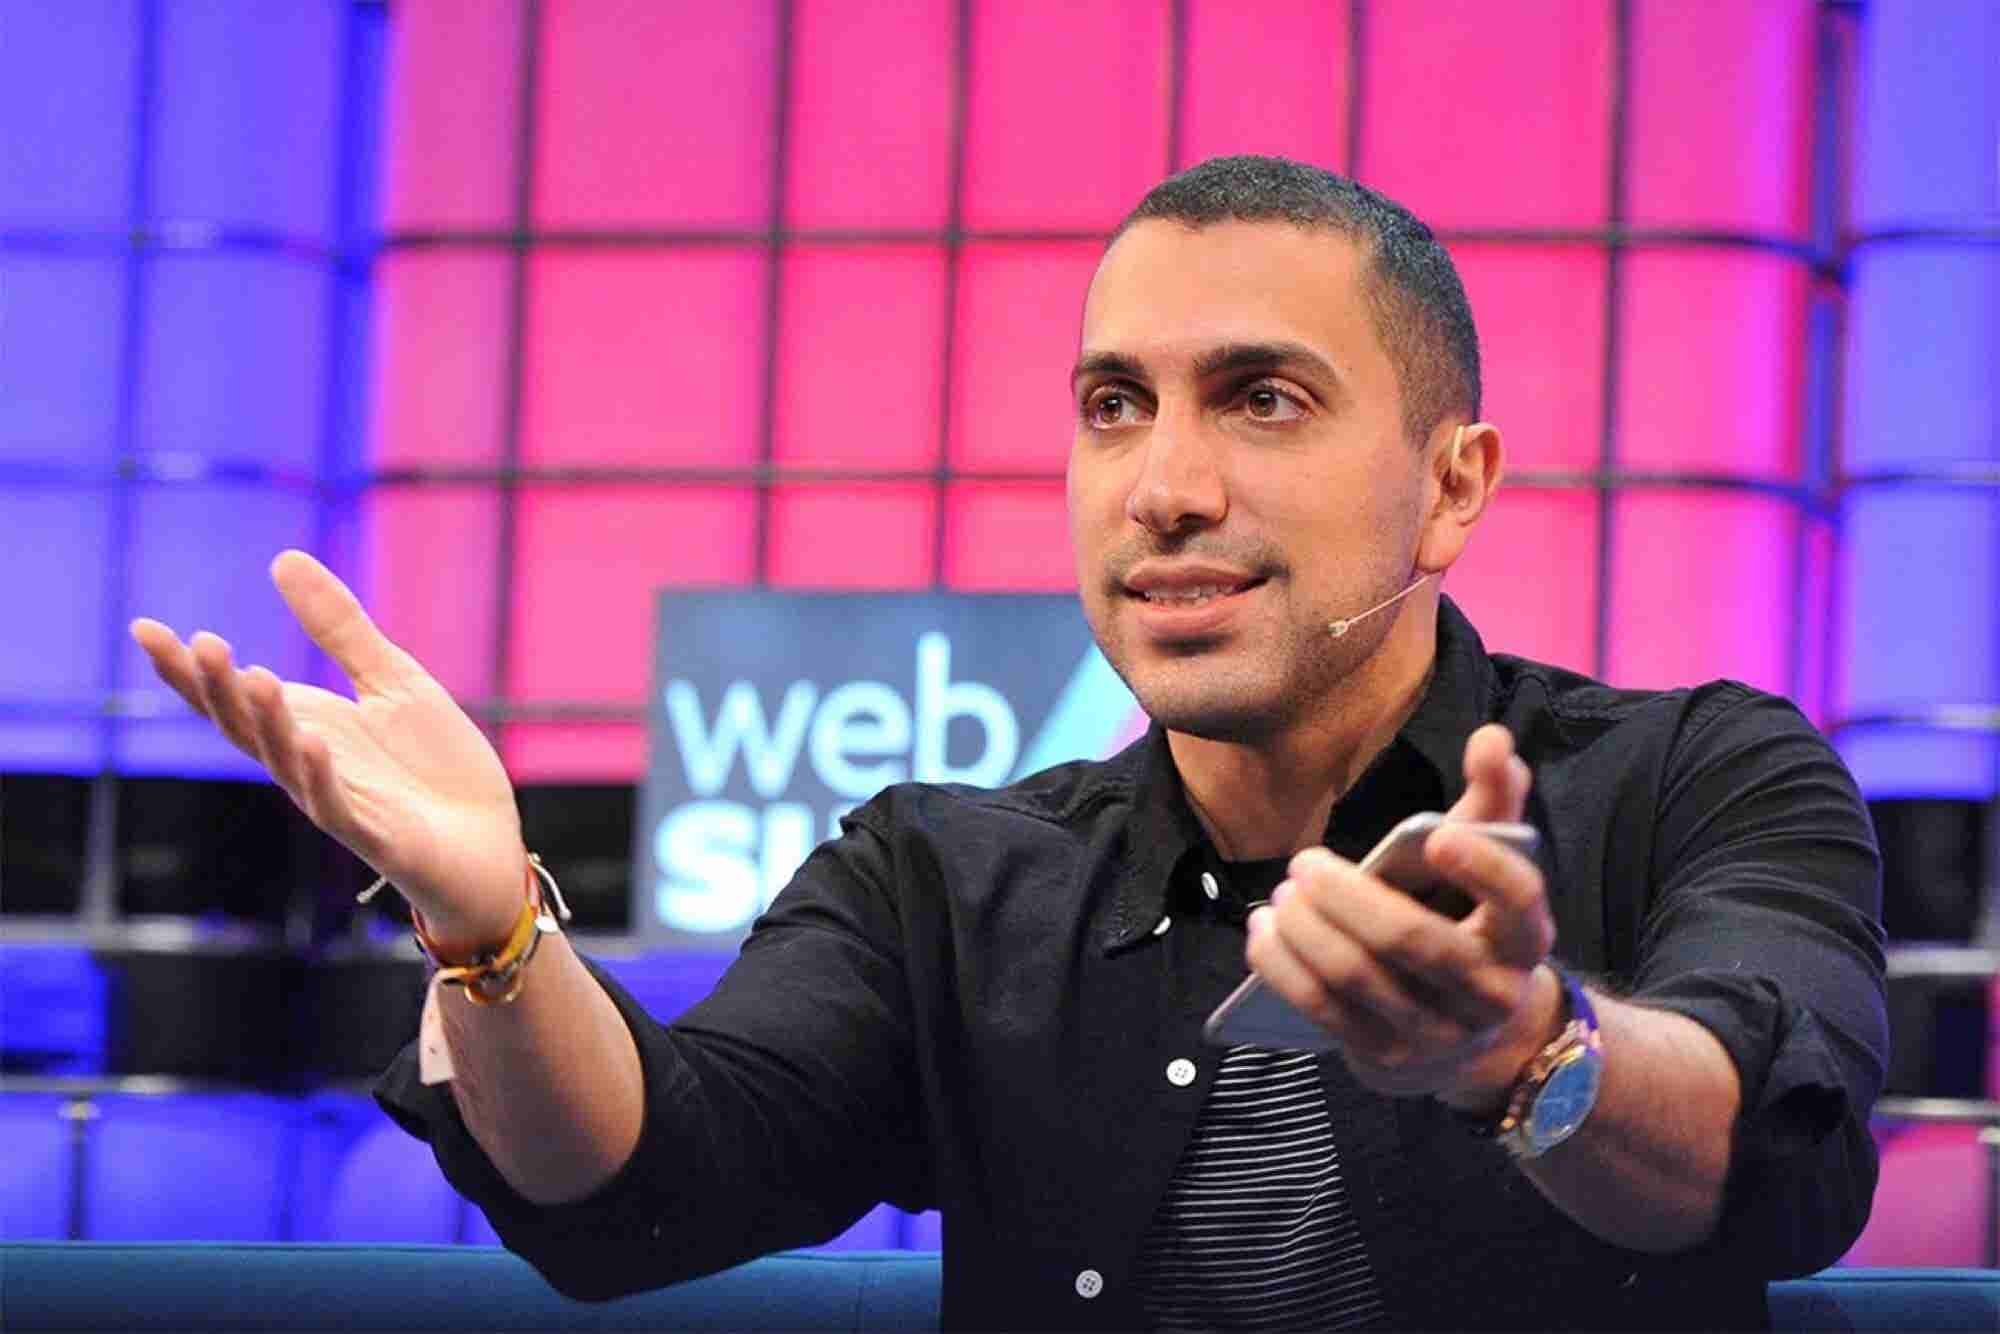 Tinder CEO Sean Rad Says He Has Hired 6 People After Matching With Them on Tinder